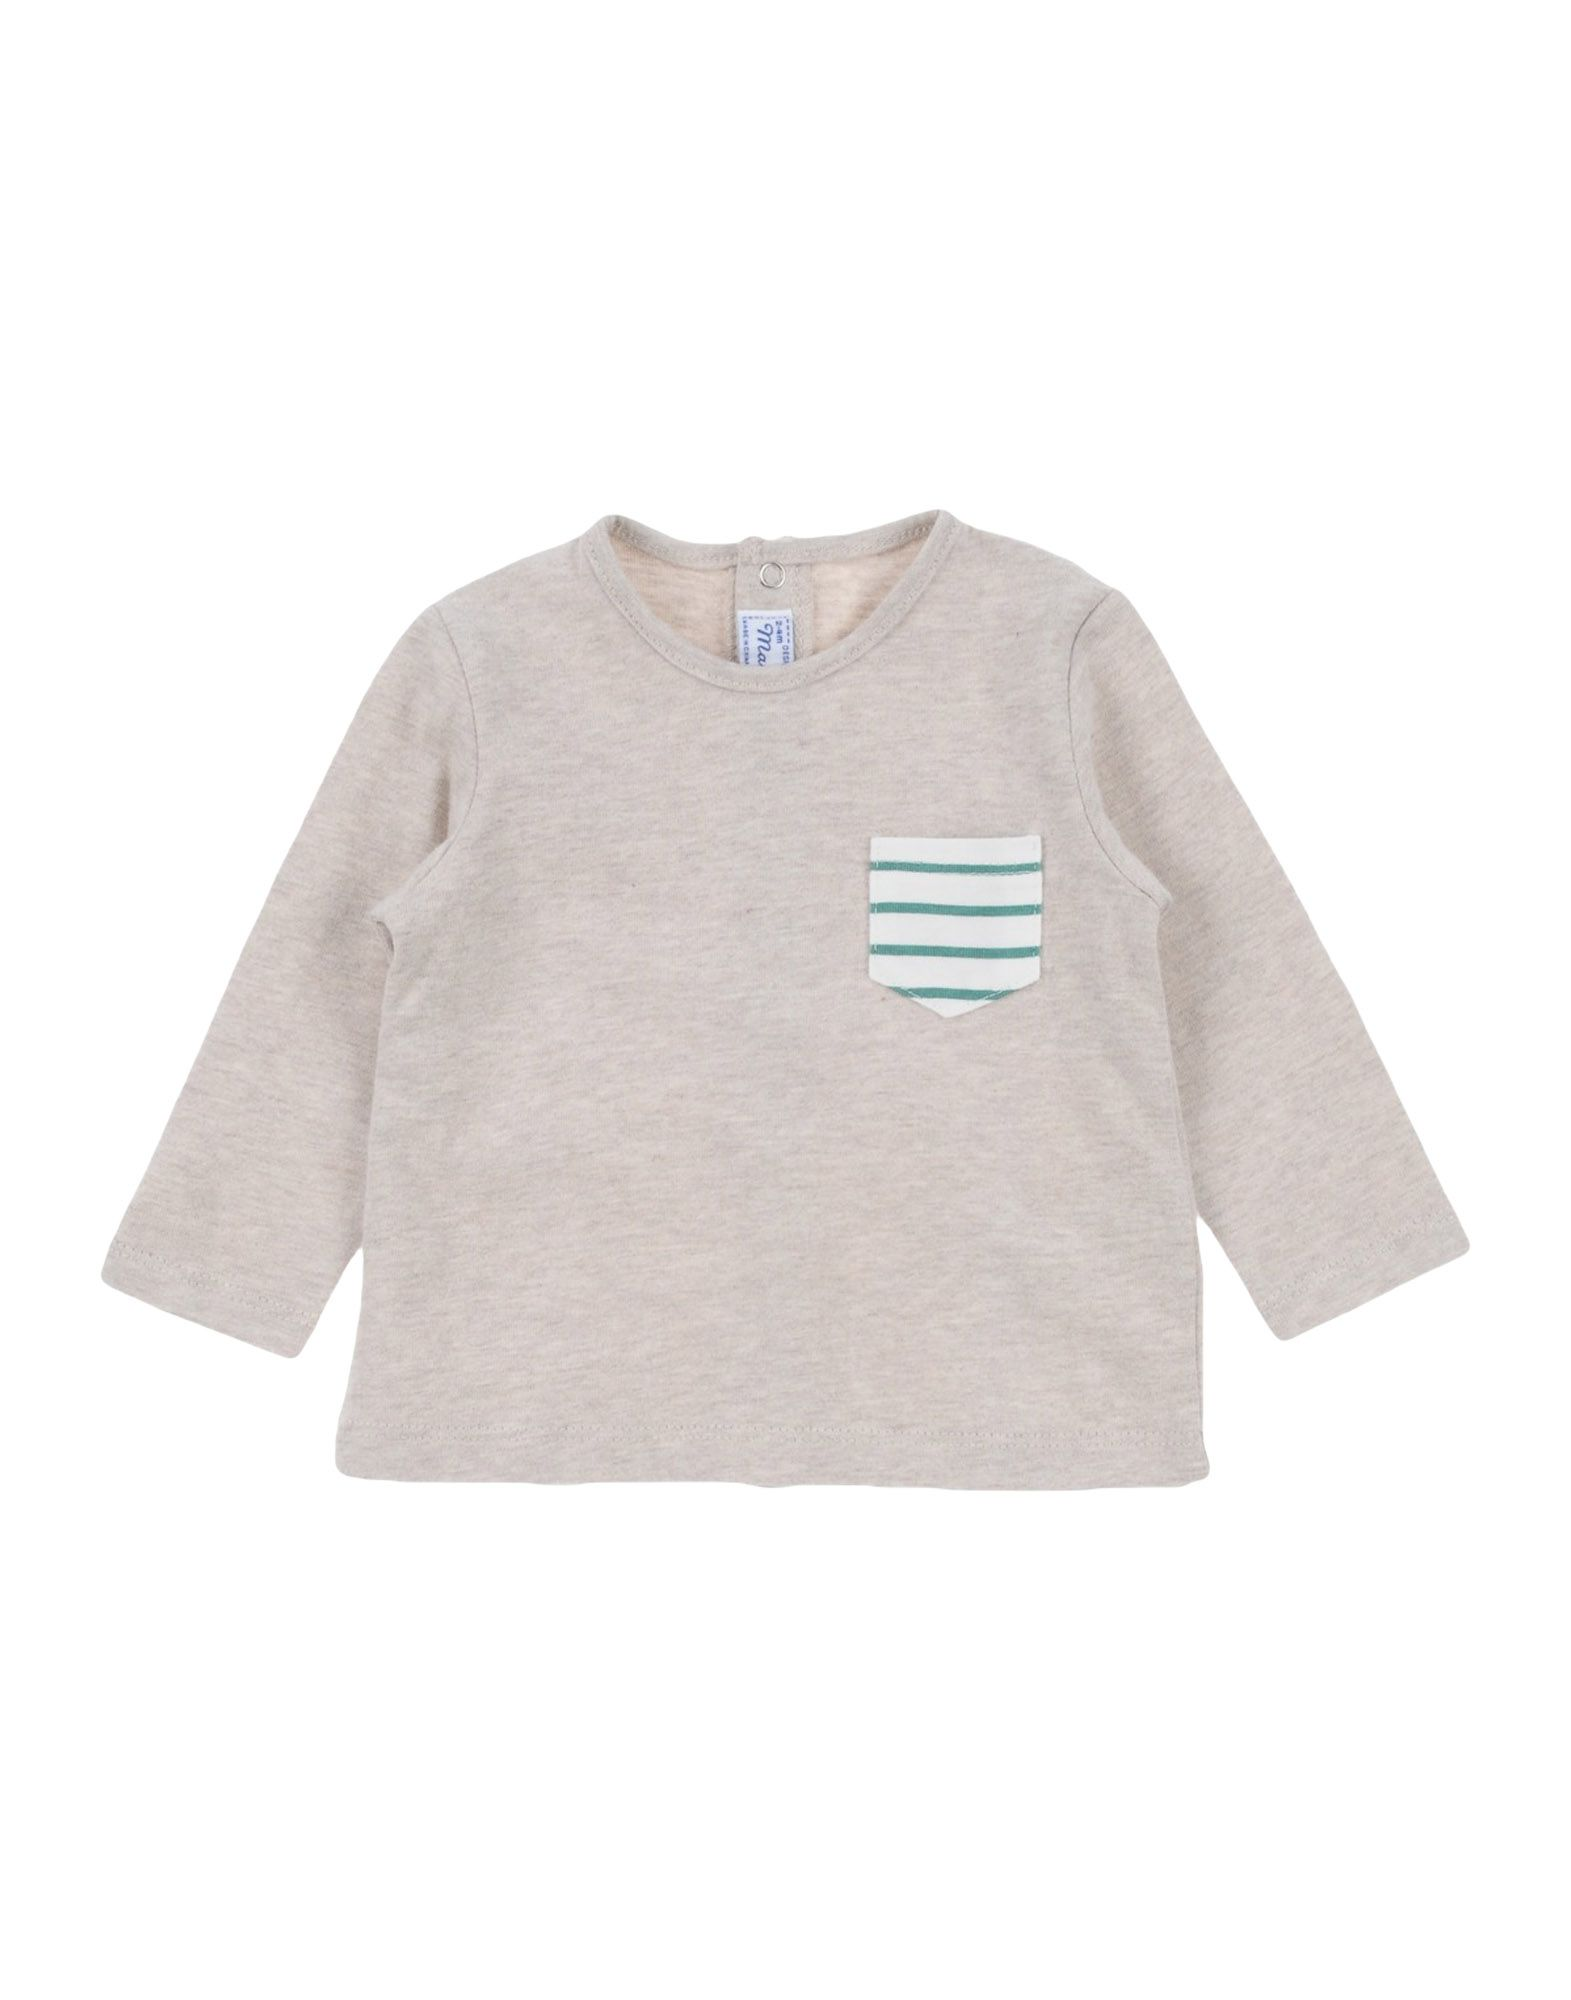 MAYORAL T-Shirt in Dove Grey